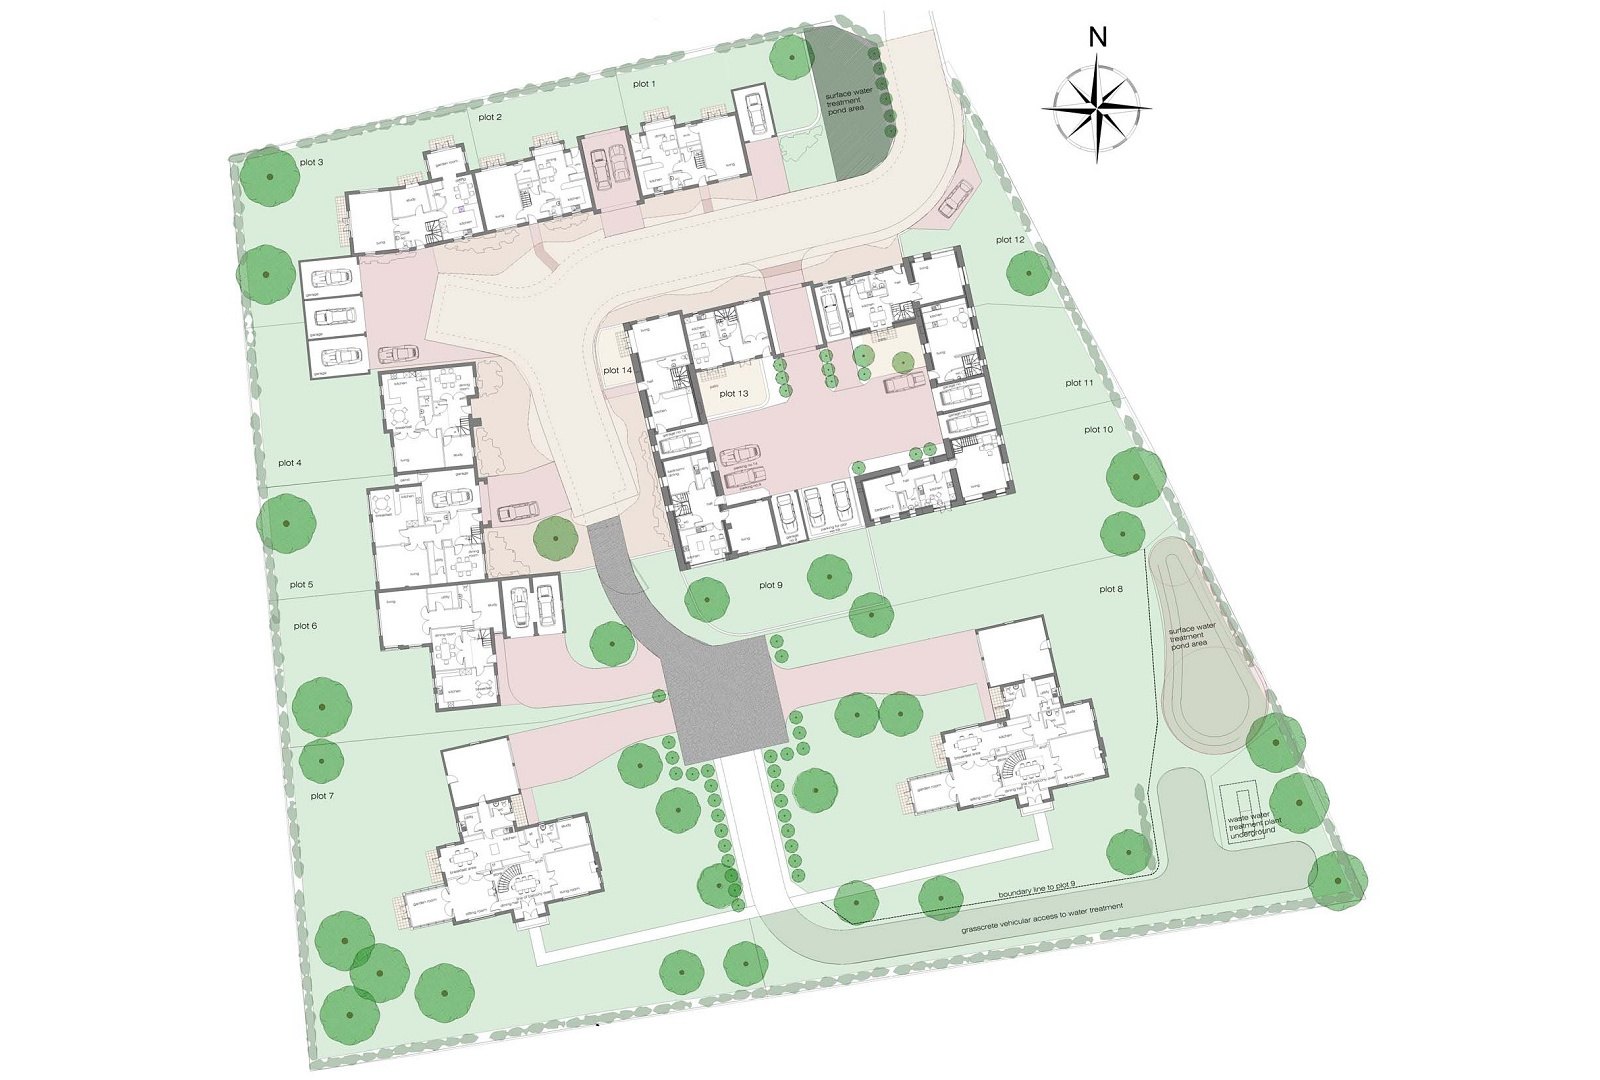 Site Layout indicating the Ground Floor Plans